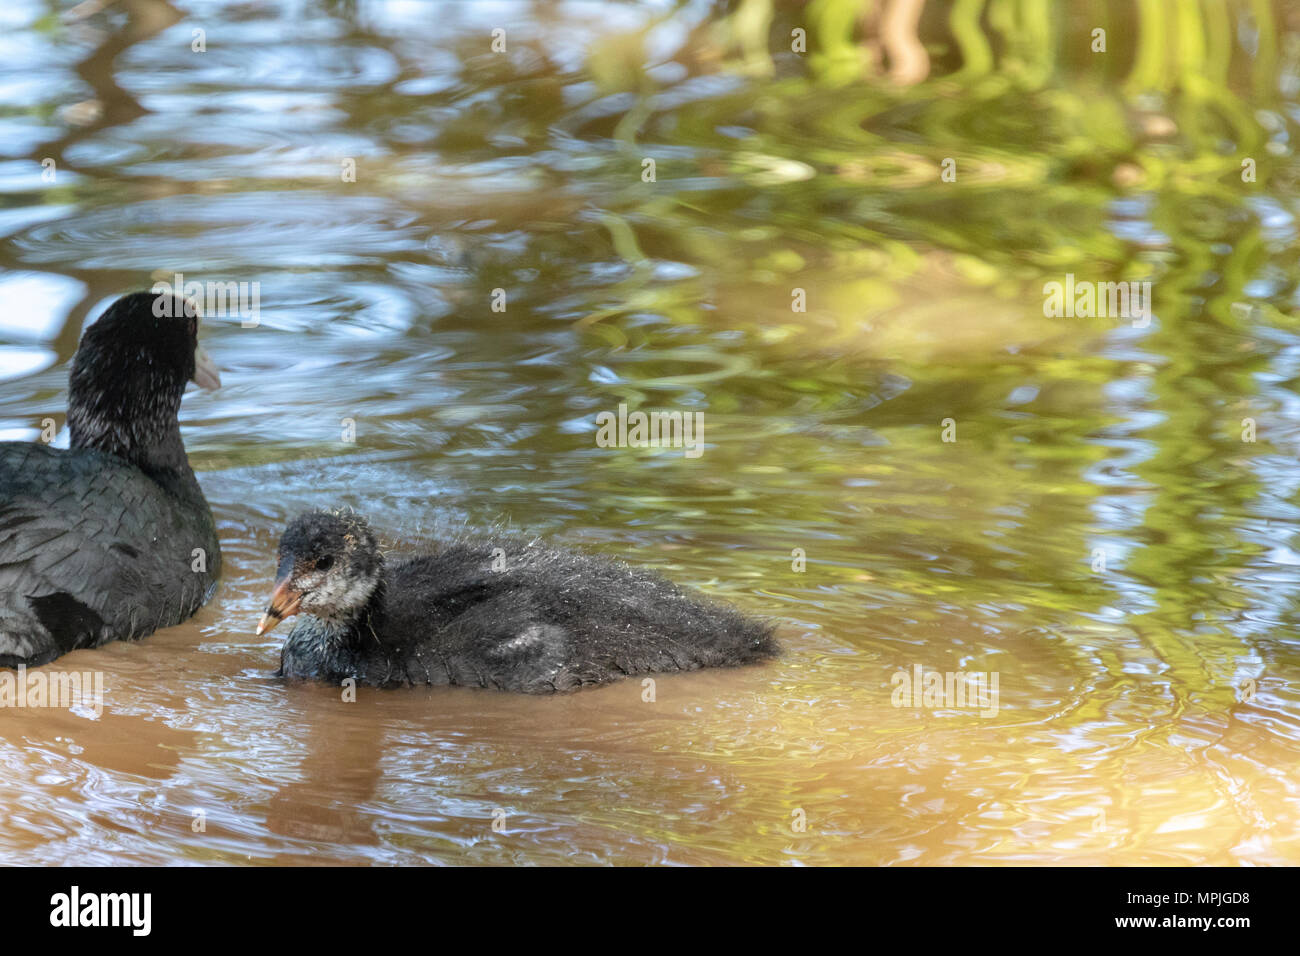 Single Eurasian coot (Fulica atra) chick swimming in a lake with its parent - Stock Image